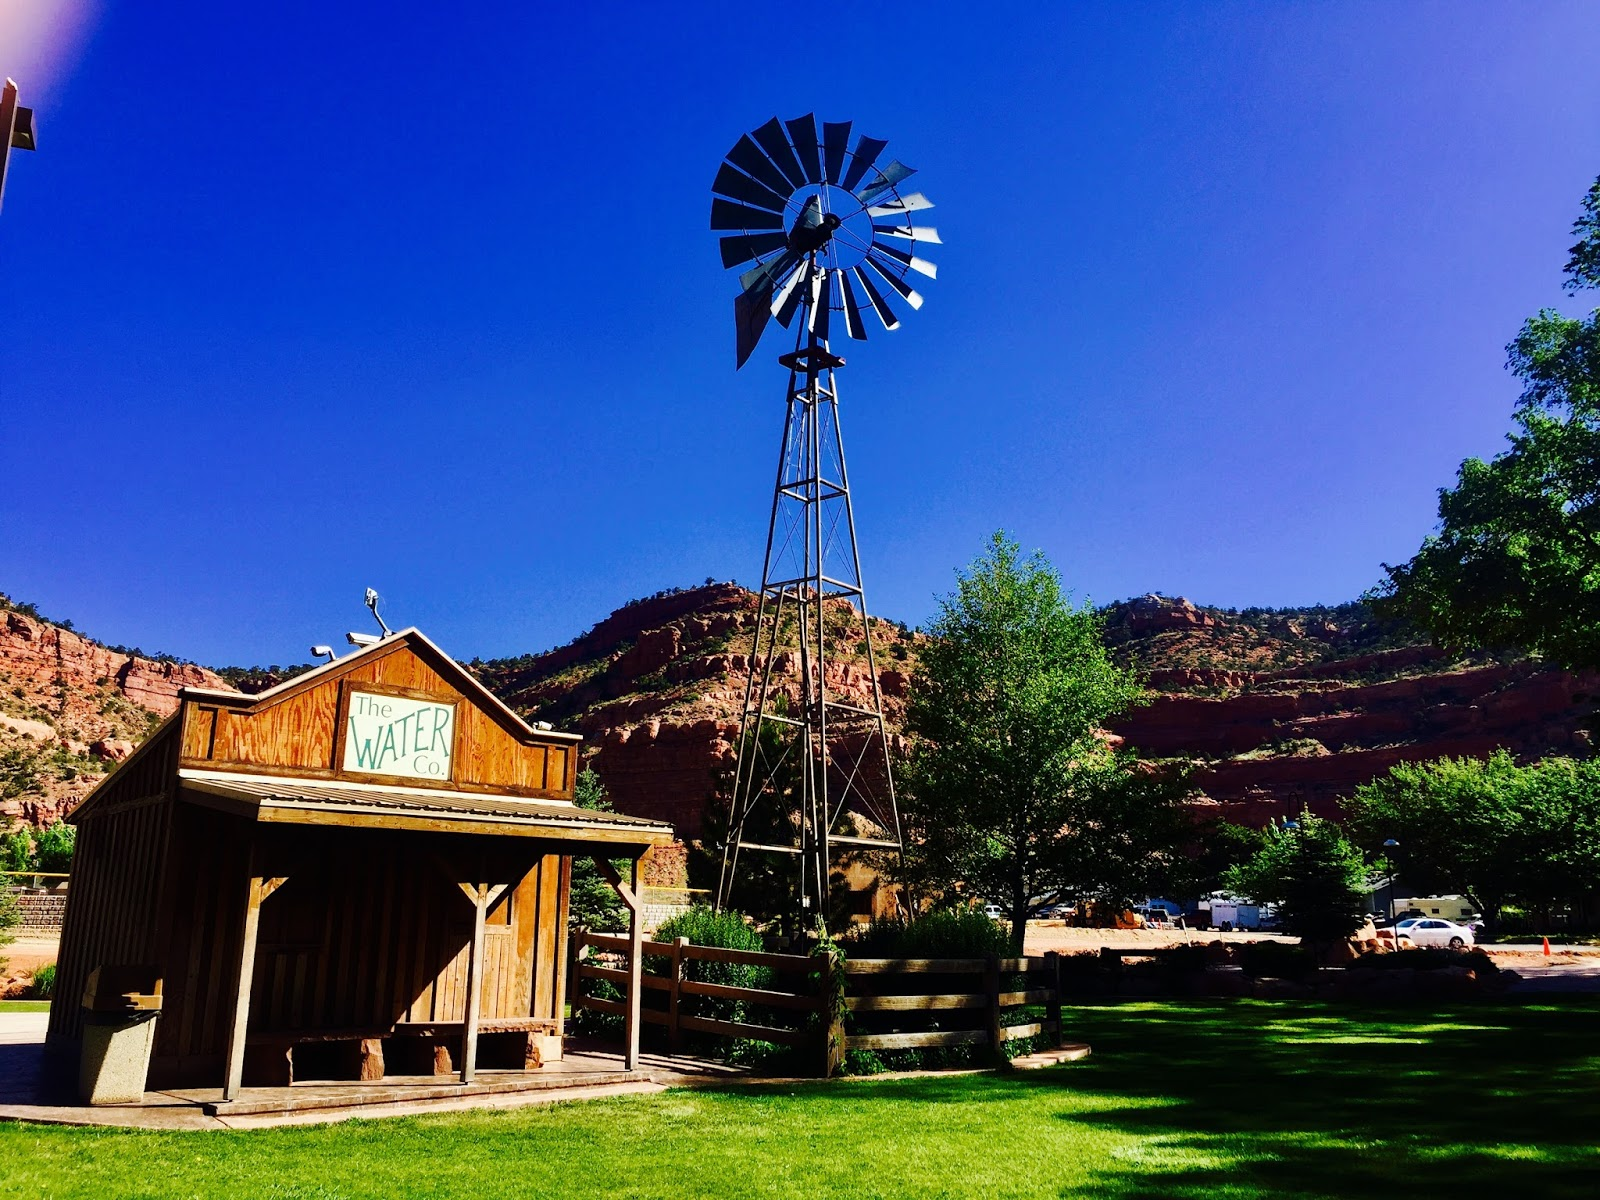 southern utah, kanab city, kanab, utah, road trip adventures, road trips, coral sand dunes, sand dunes, barns, rustic, little hollywood, parrys lodge, parry lodge, canyons, atv's, atvs, sand,